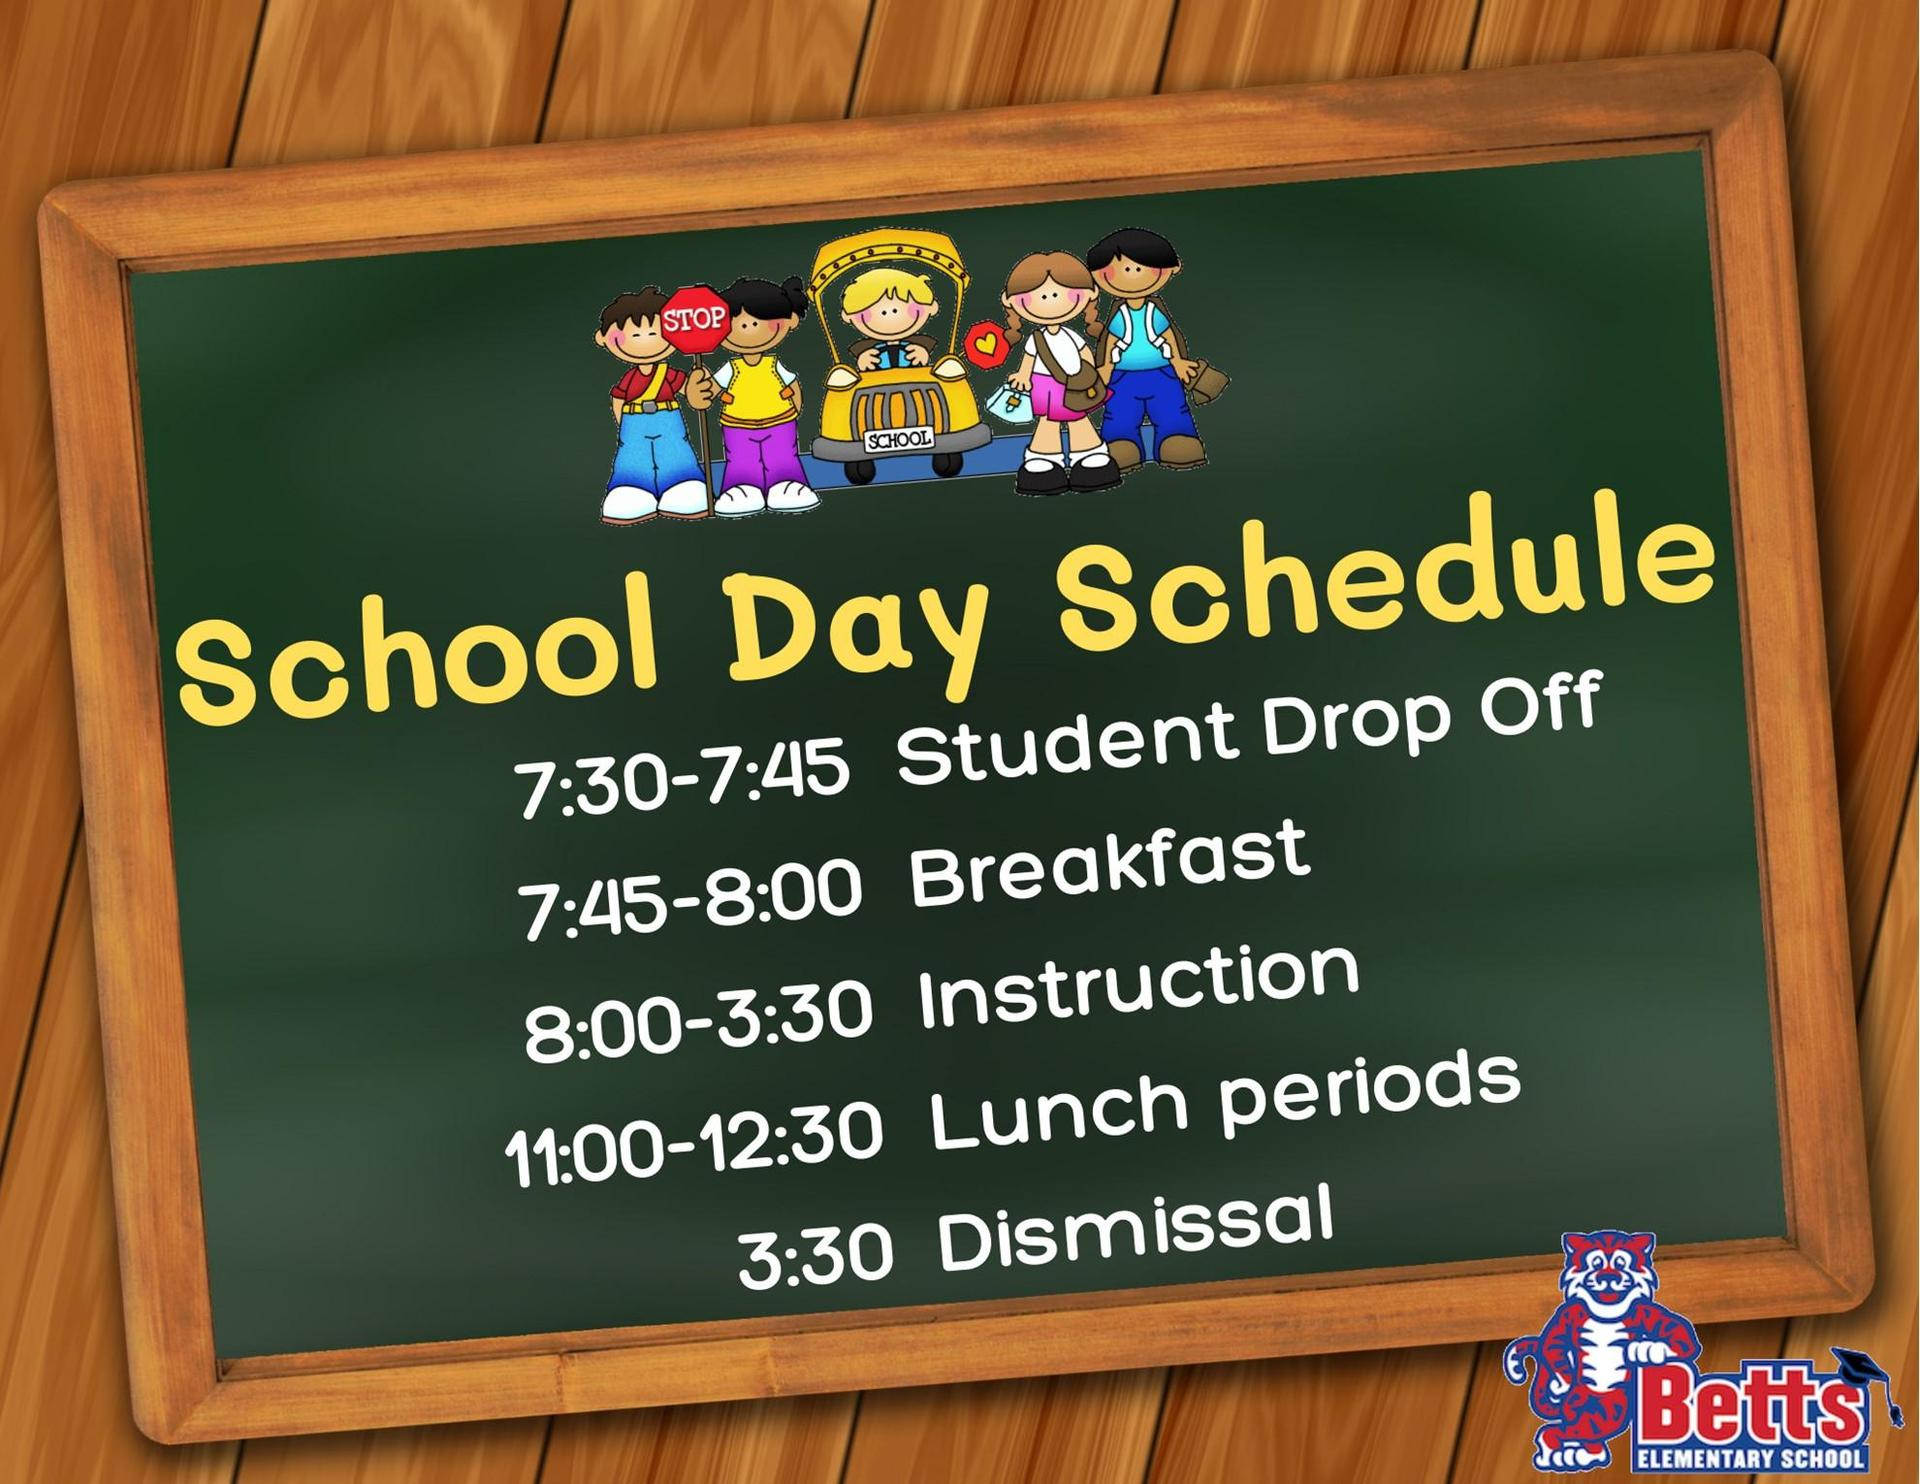 Image of School Day Schedule poster